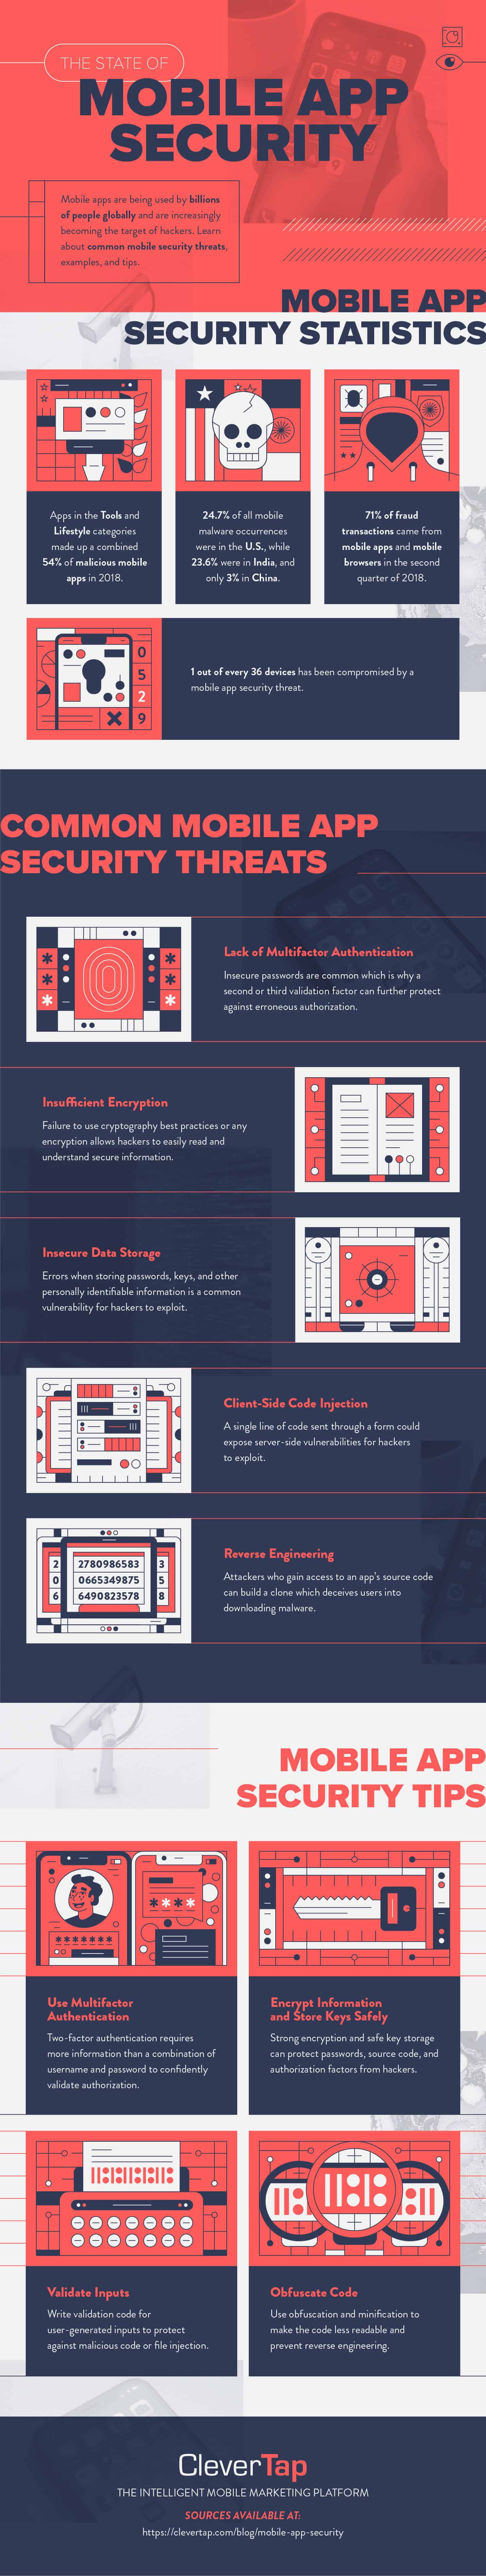 how-hackers-attack-mobile-apps infographic